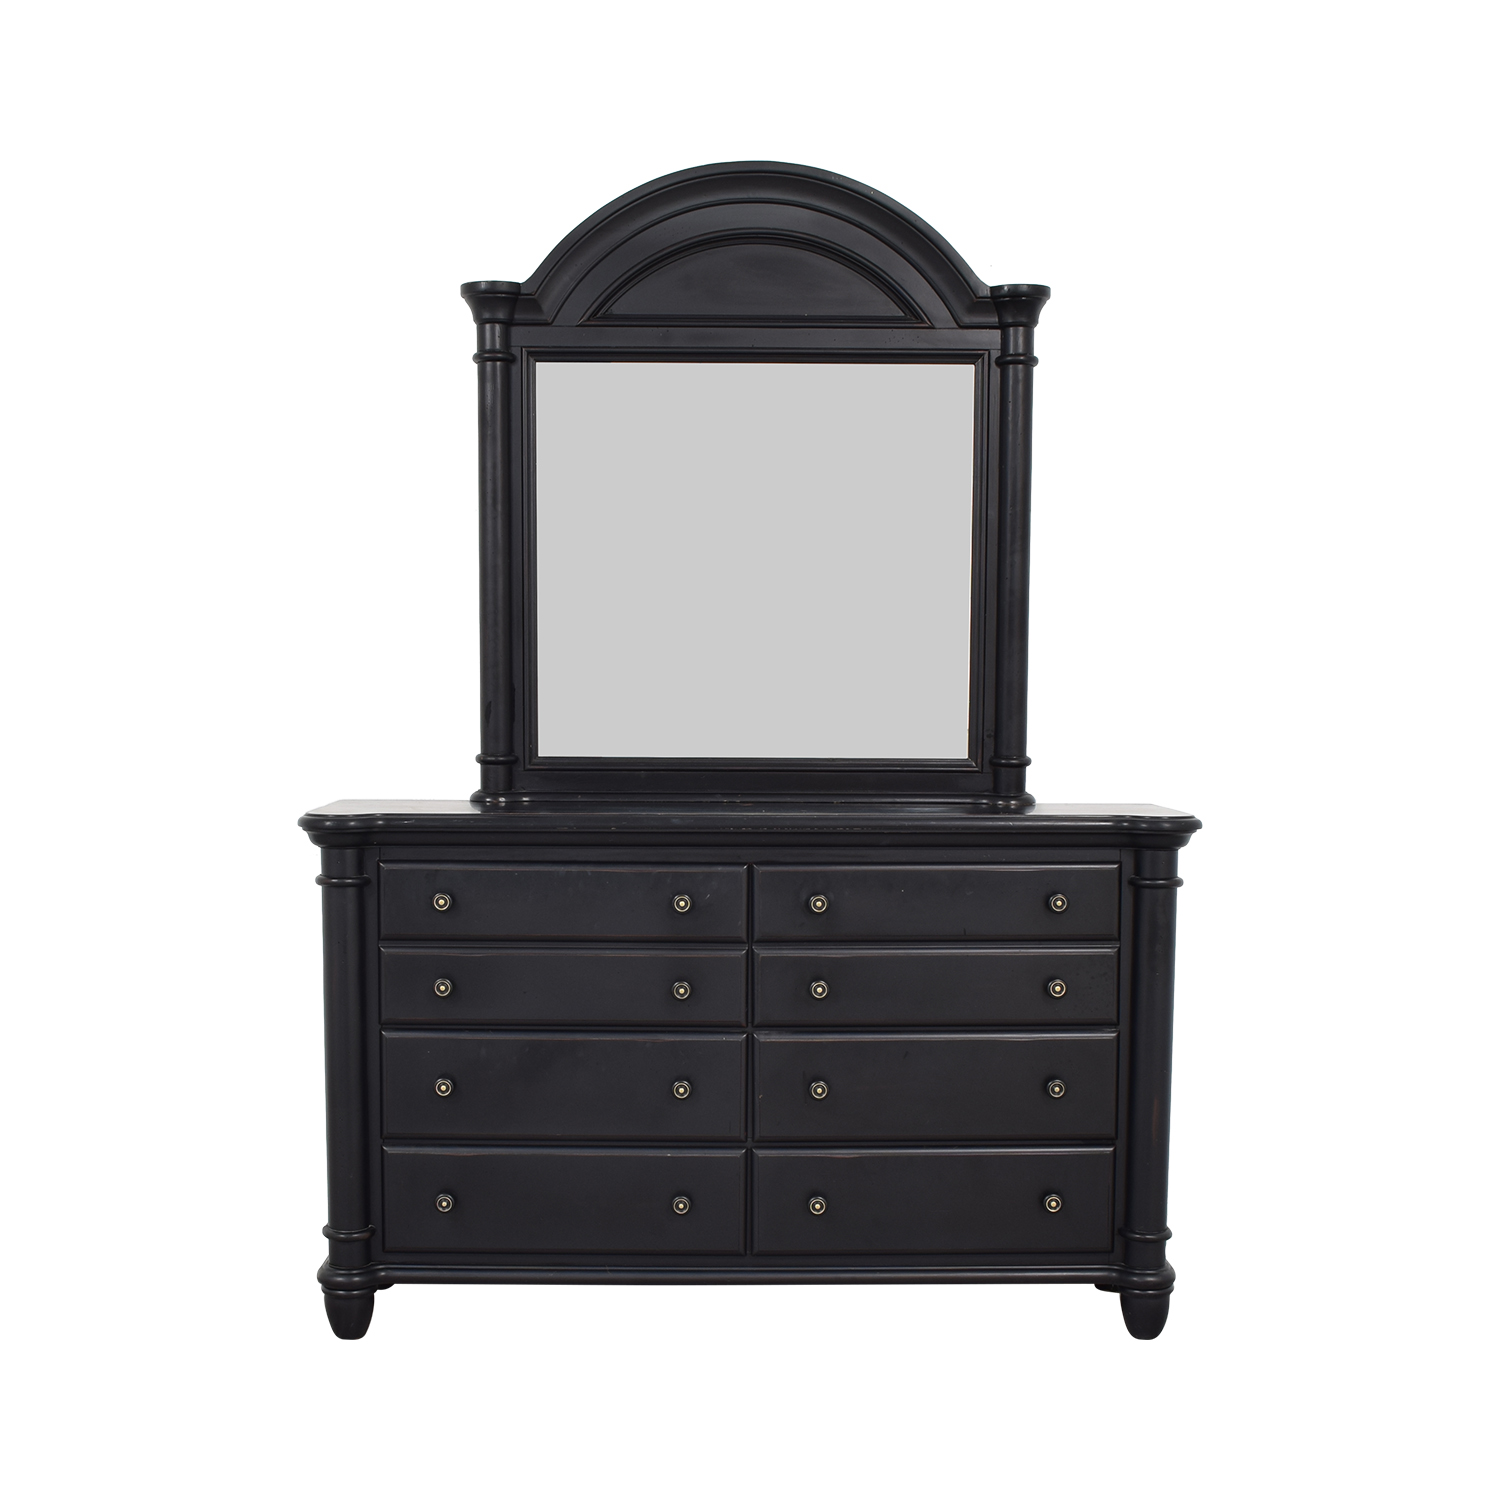 Standard Furniture Standard Furniture Eight Drawer Dresser with Mirror second hand